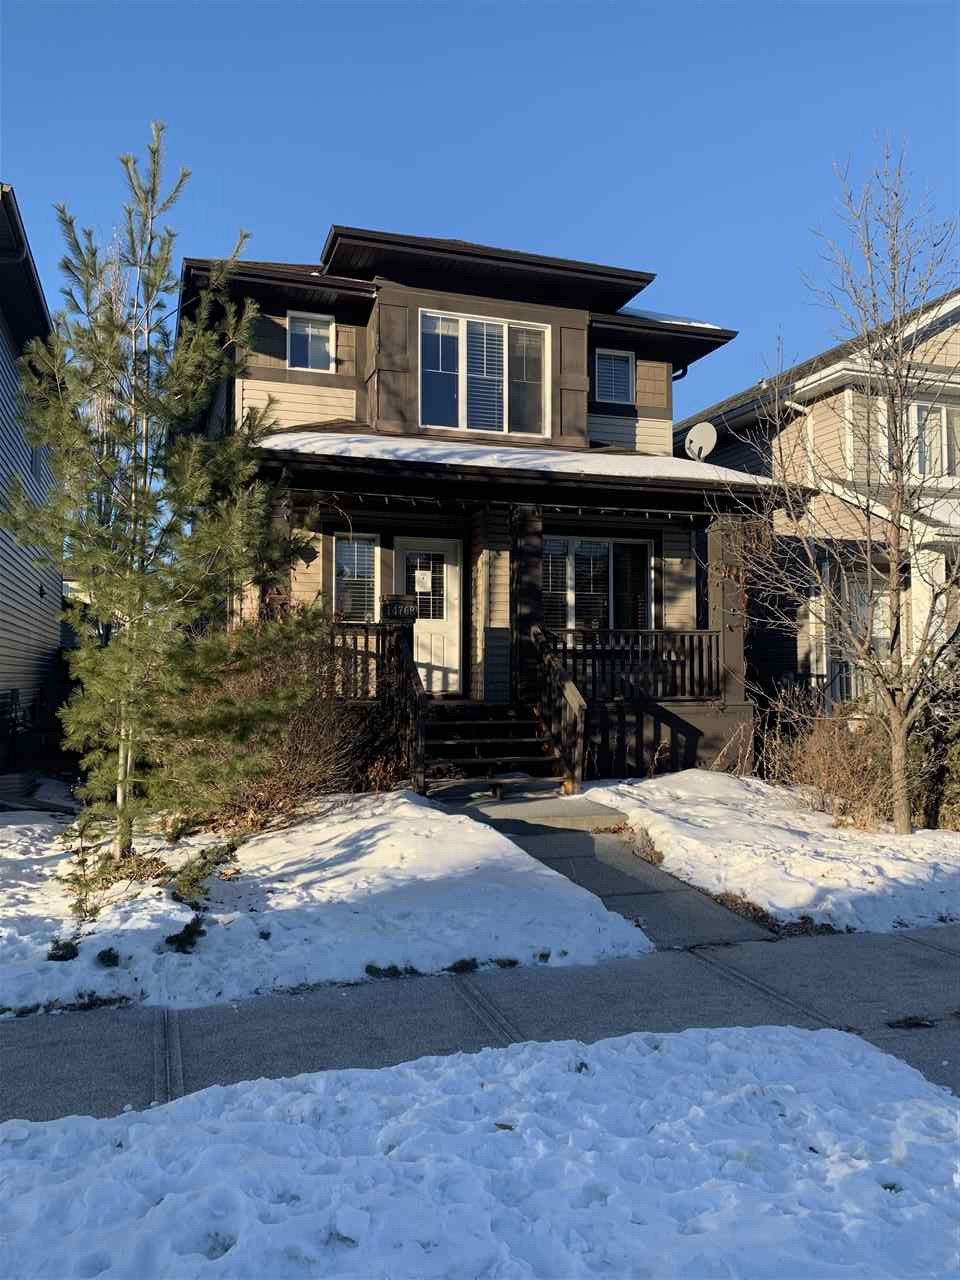 Main Photo: 14768 140 Street in Edmonton: Zone 27 House for sale : MLS®# E4224548